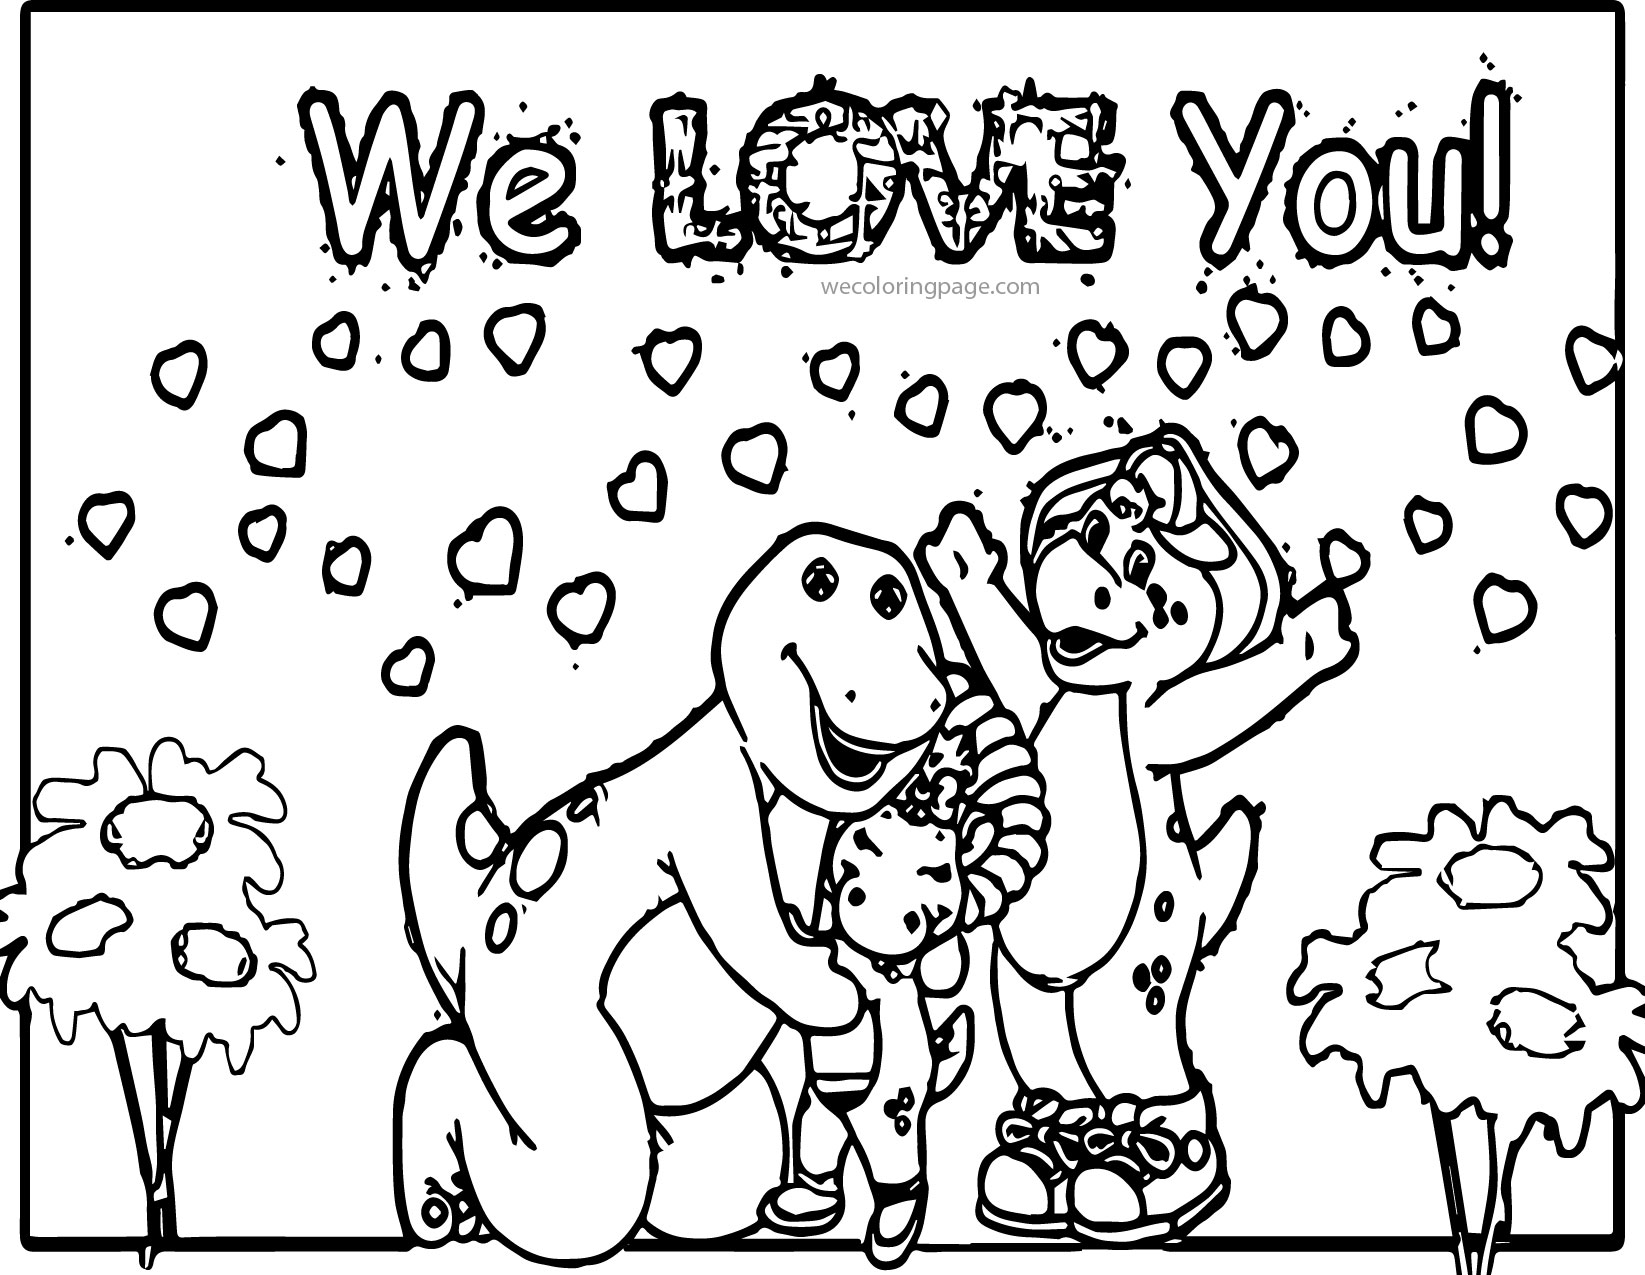 Uncategorized Barney Color Pages barney friends coloring pages wecoloringpage pages